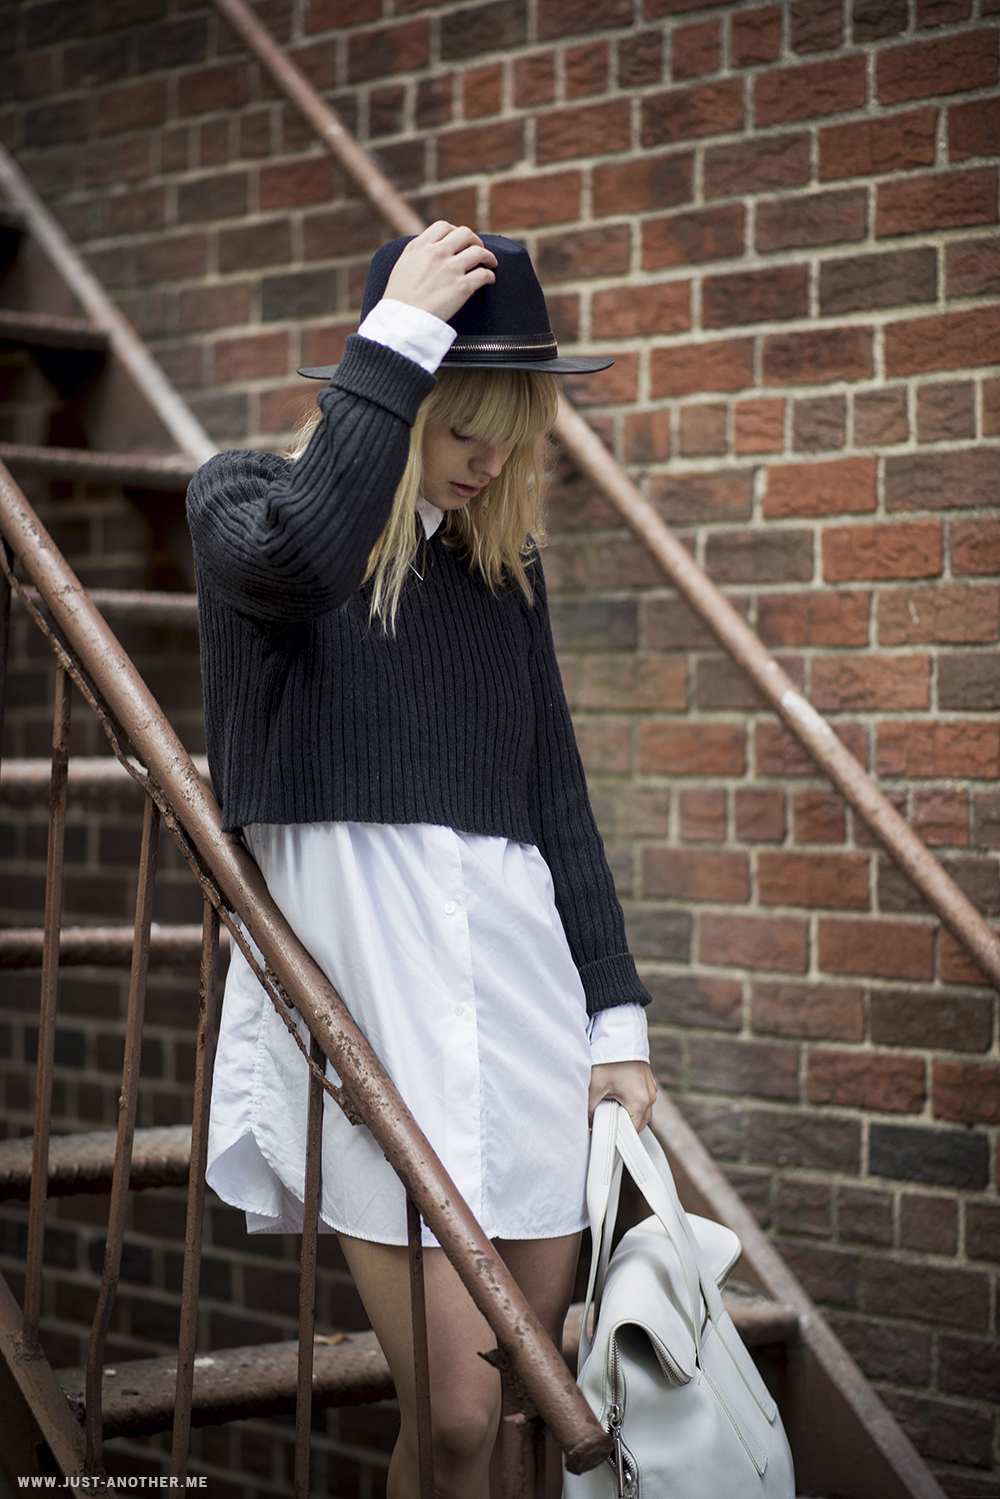 Lisa Dengler is wearing a white oversized shirt dress from Mads Noergaard, dark blue cropped knit top from Weekday and the hat is from Zara